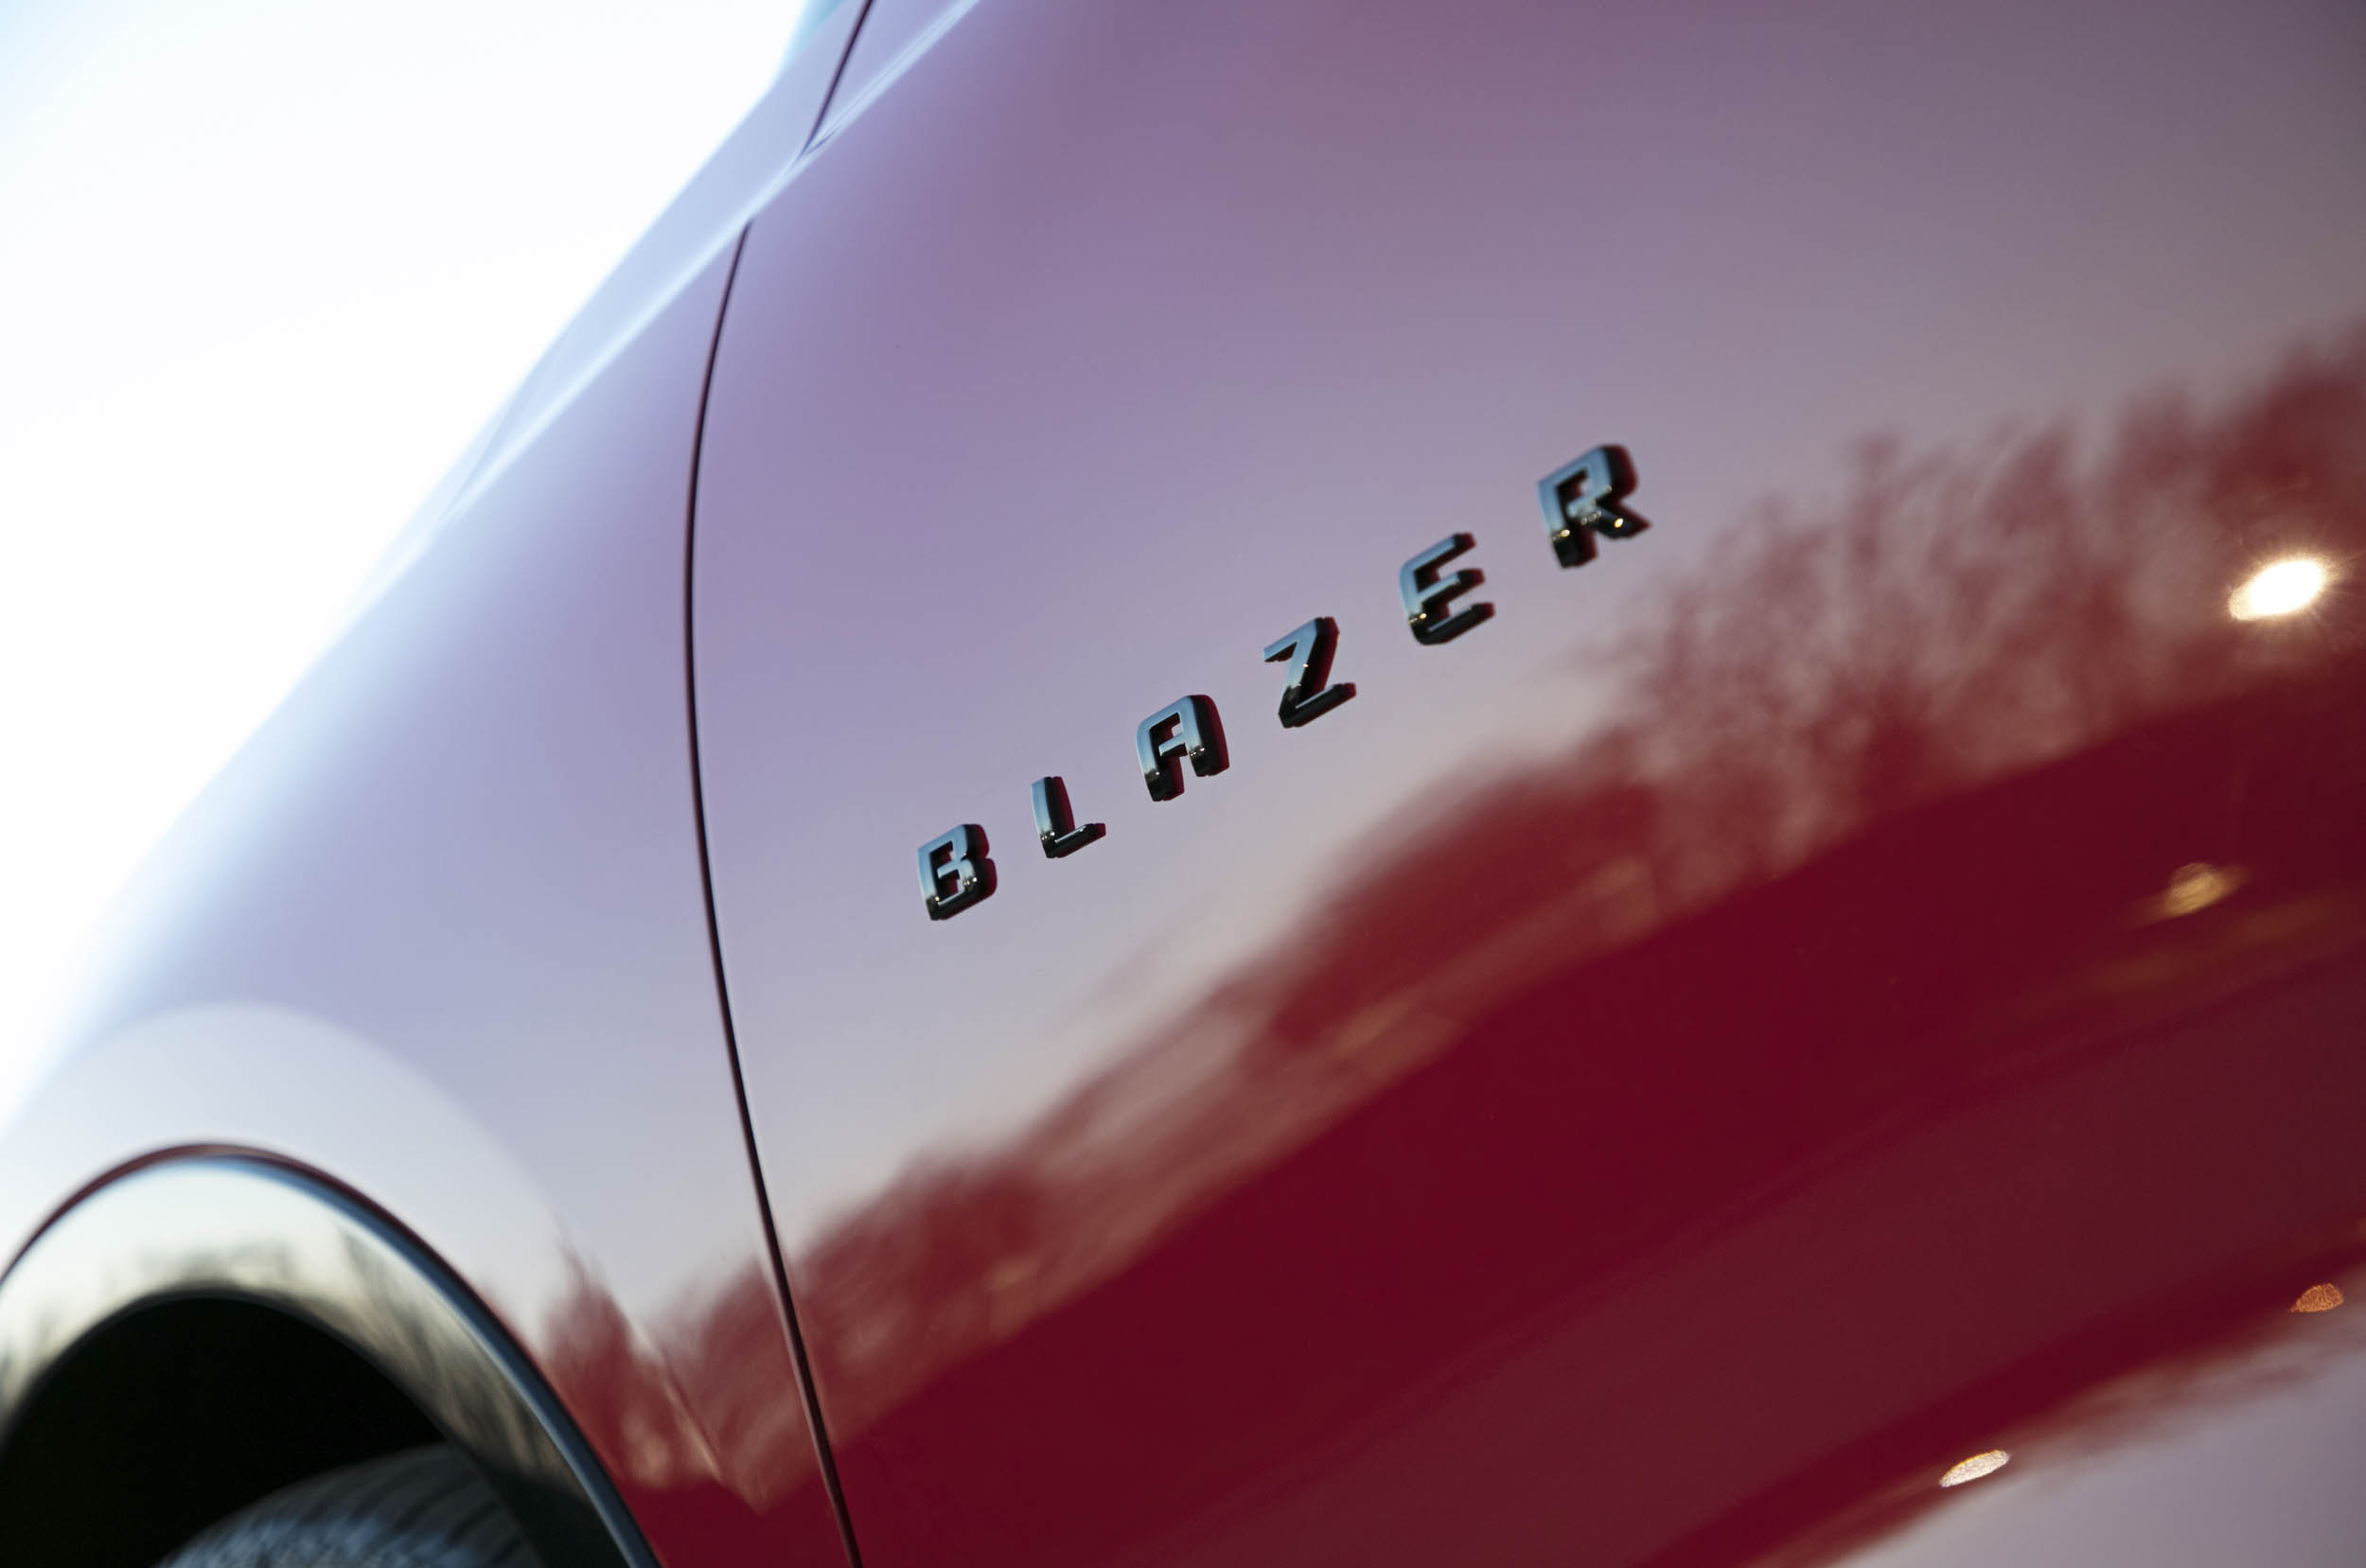 2019 Chevrolet Blazer badge detail